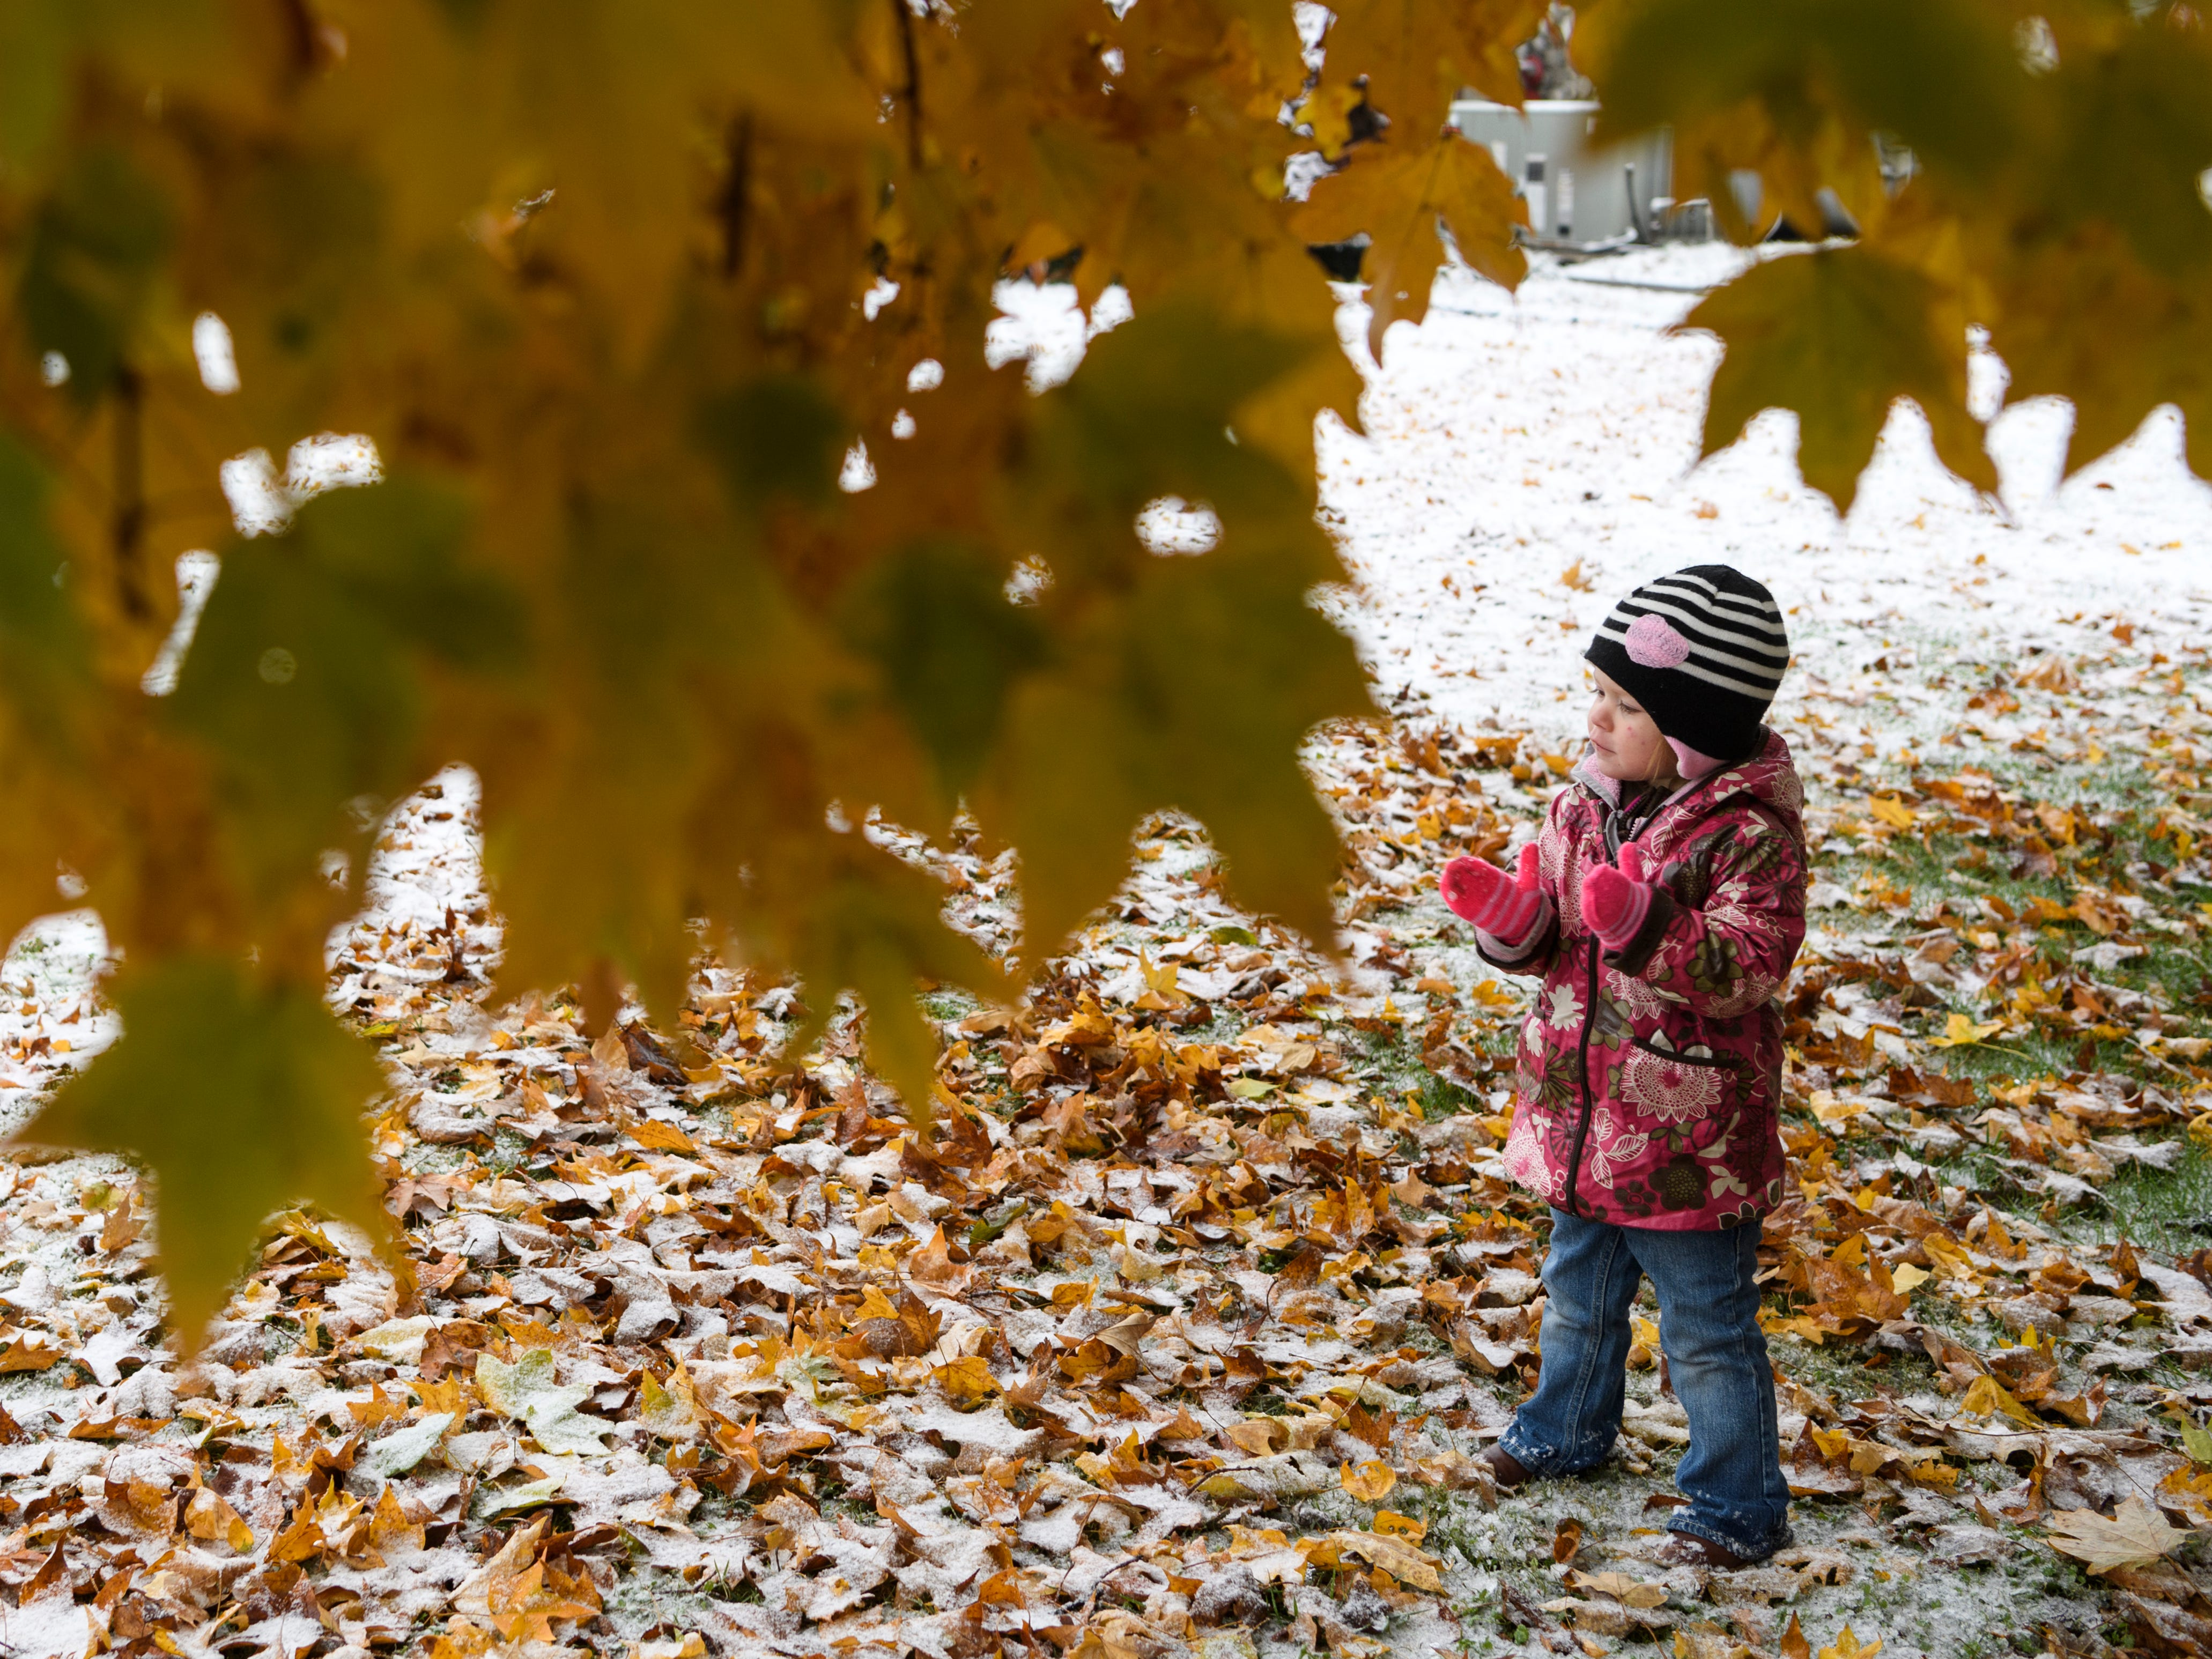 """London Phelps, 2, claps snow off of her gloves during a walk to the Henderson County Public Library with her sisters, Emmy, 4, and Harper, 2-months-old, and mother, Whitney Phelps, in downtown Henderson, Ky., Thursday, Nov. 15, 2018. """"We thought we would go to the library to see if we could check out the movie 'Frozen' and watch it at home with some popcorn during our snow day,"""" Whitney said."""